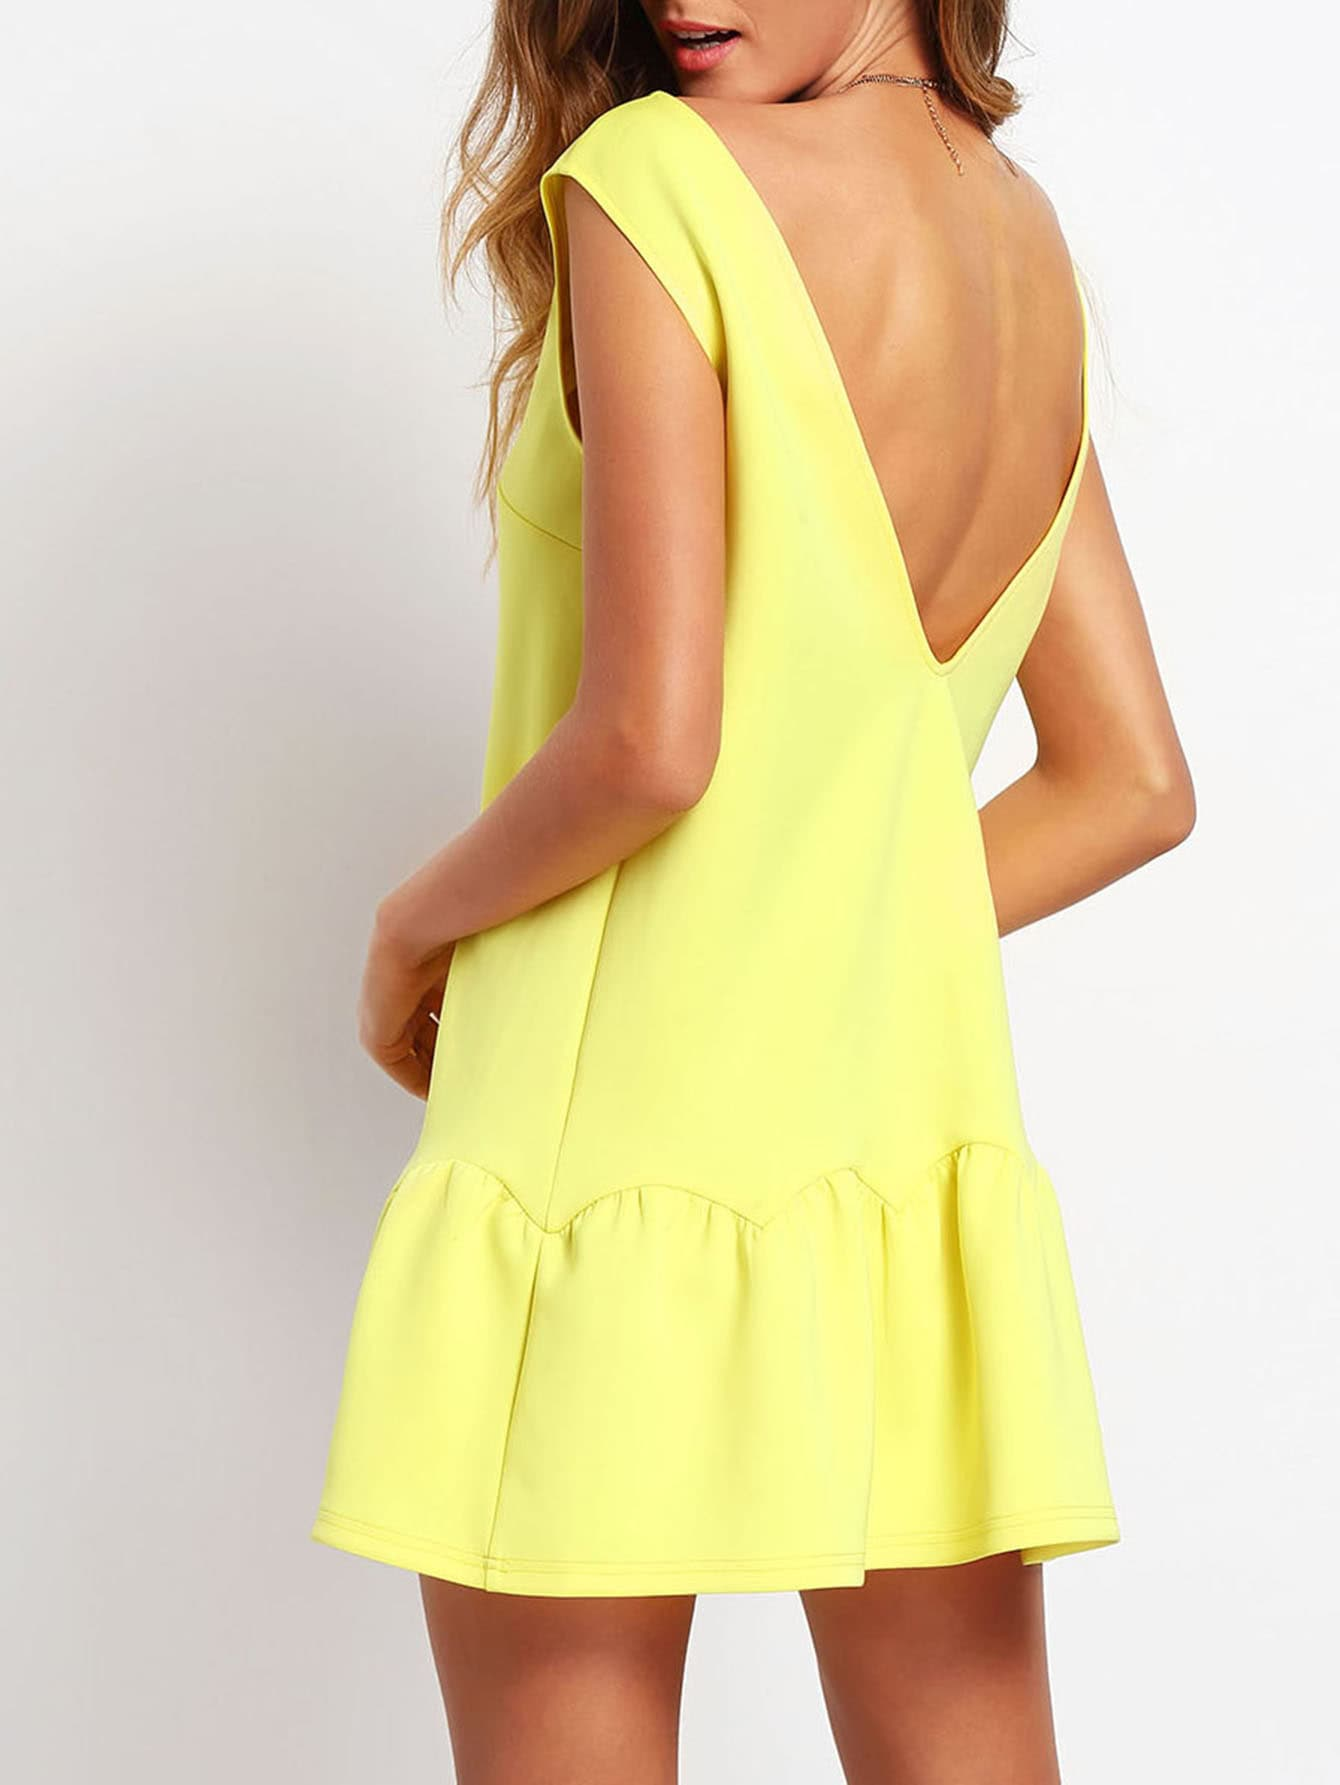 Fee g yellow dress h and m